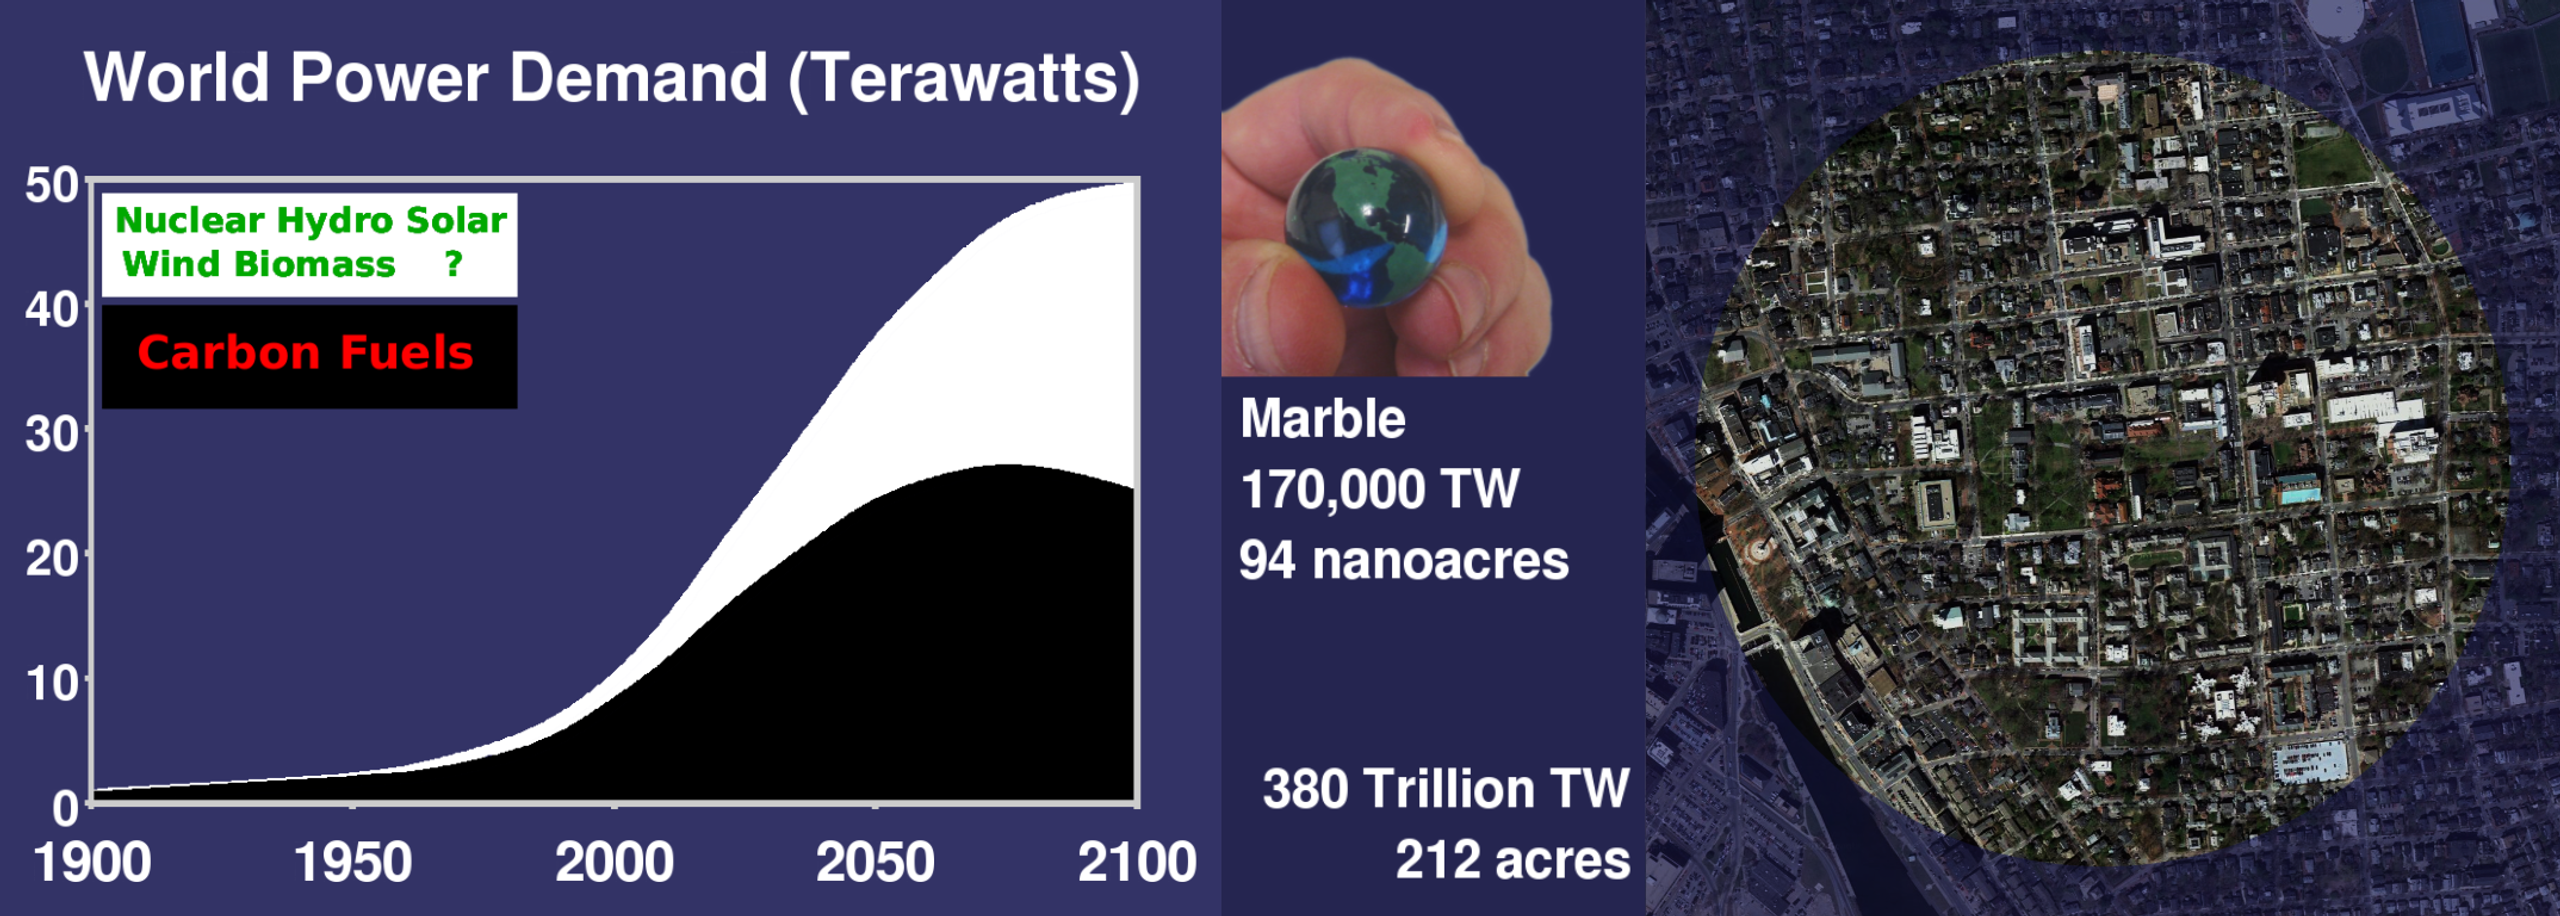 Picture of World Power Demand rising to 50TW by the end of the century.  Picture comparing a 7/8inch marble to 212 acres, analogy for the earth's 170 thousand terawatts to the suns 380 trillion terawatts